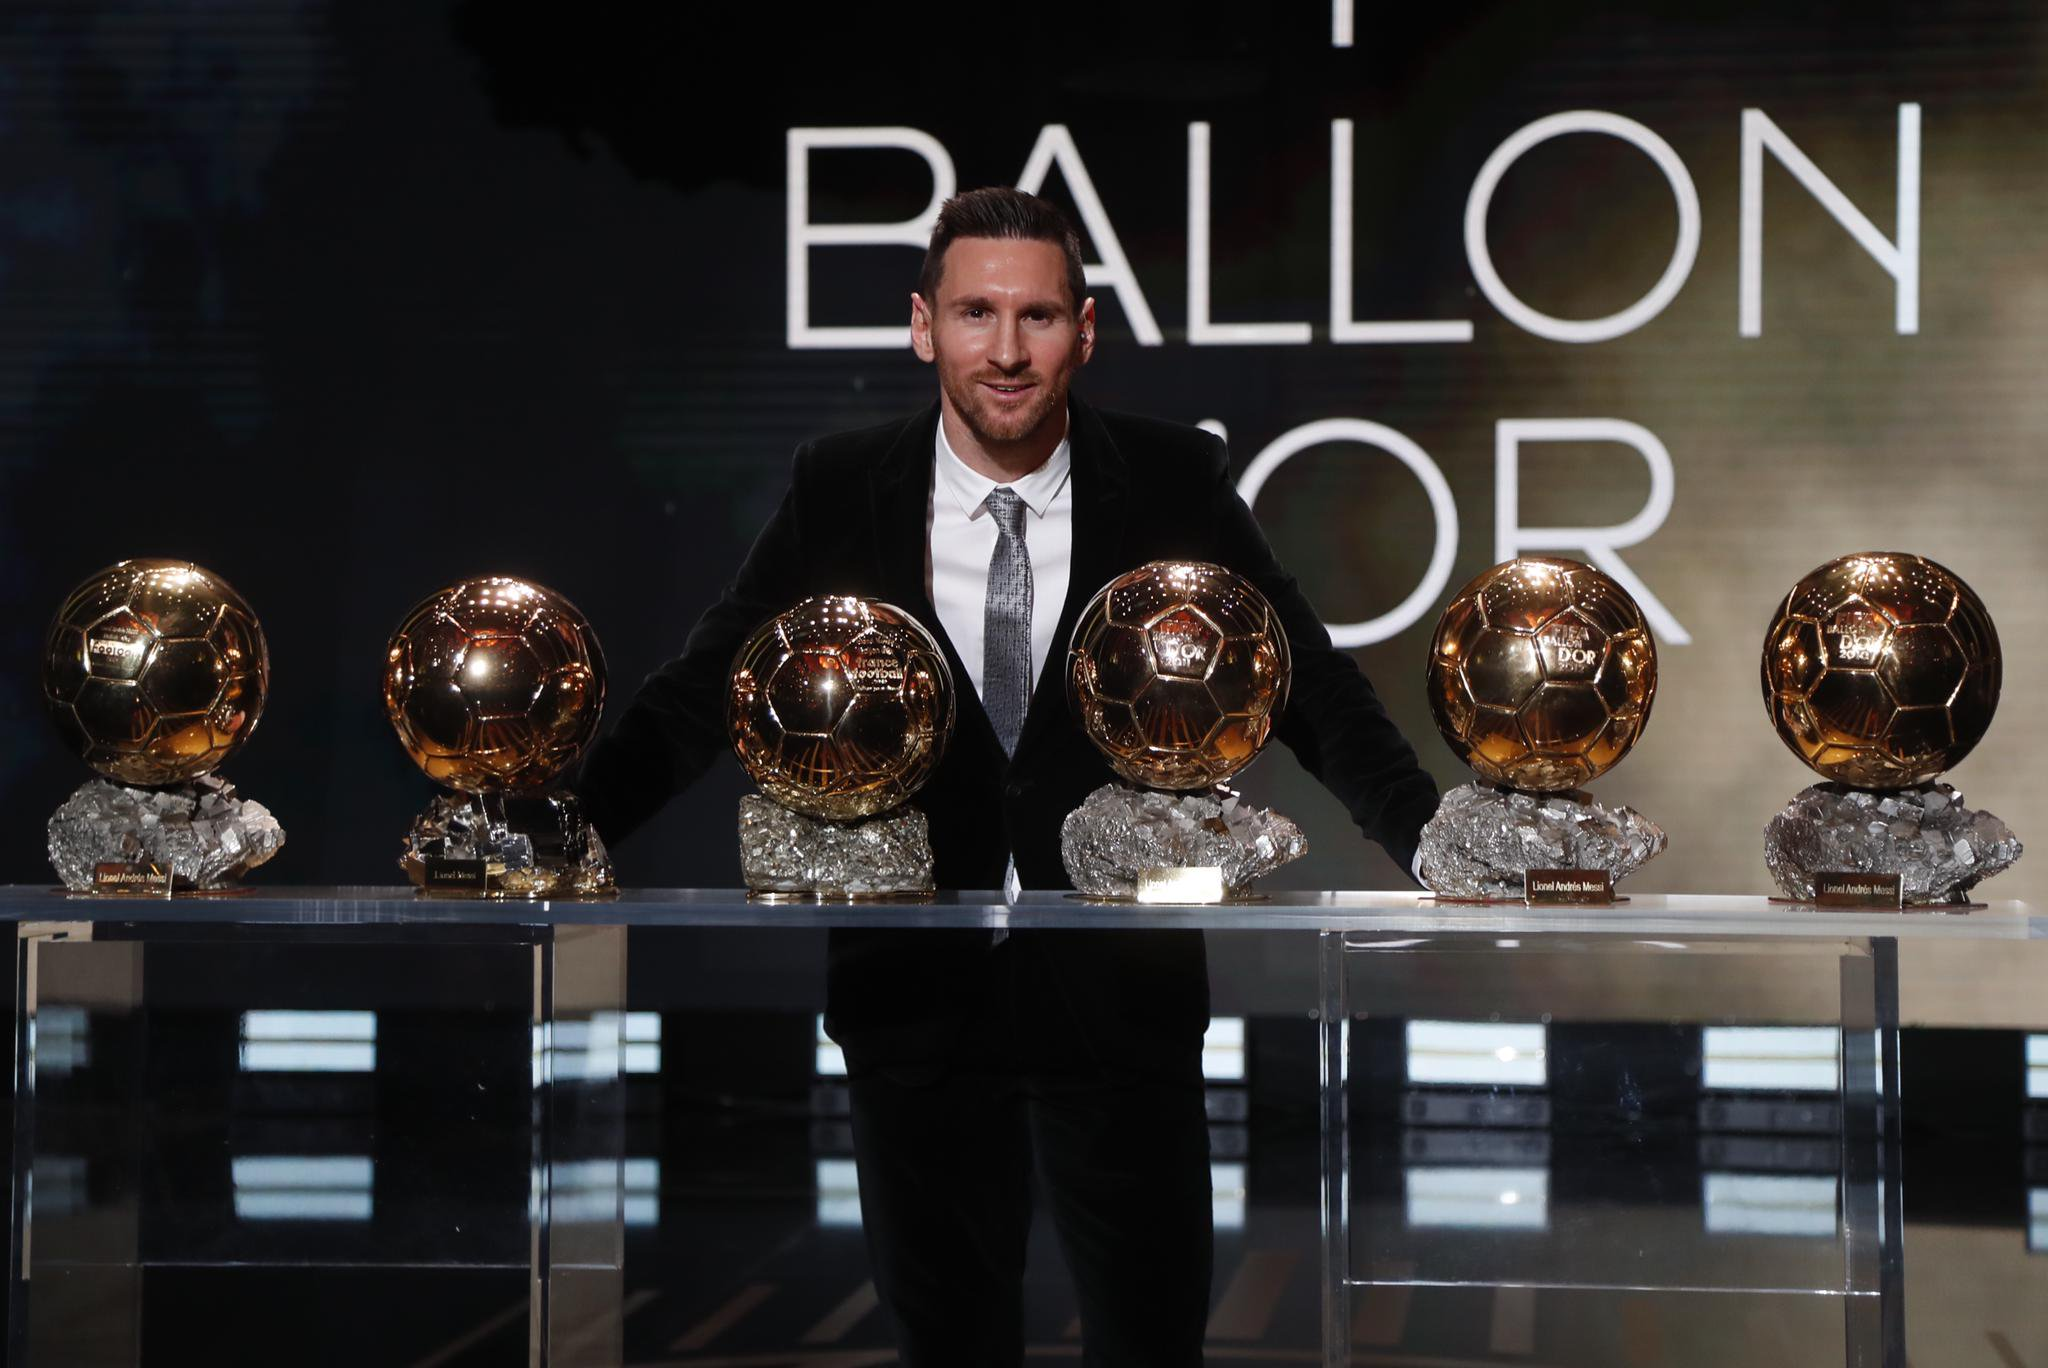 Oficial: Lionel Messi a obtinut Balonul de Aur! Argentinianul intra in istorie